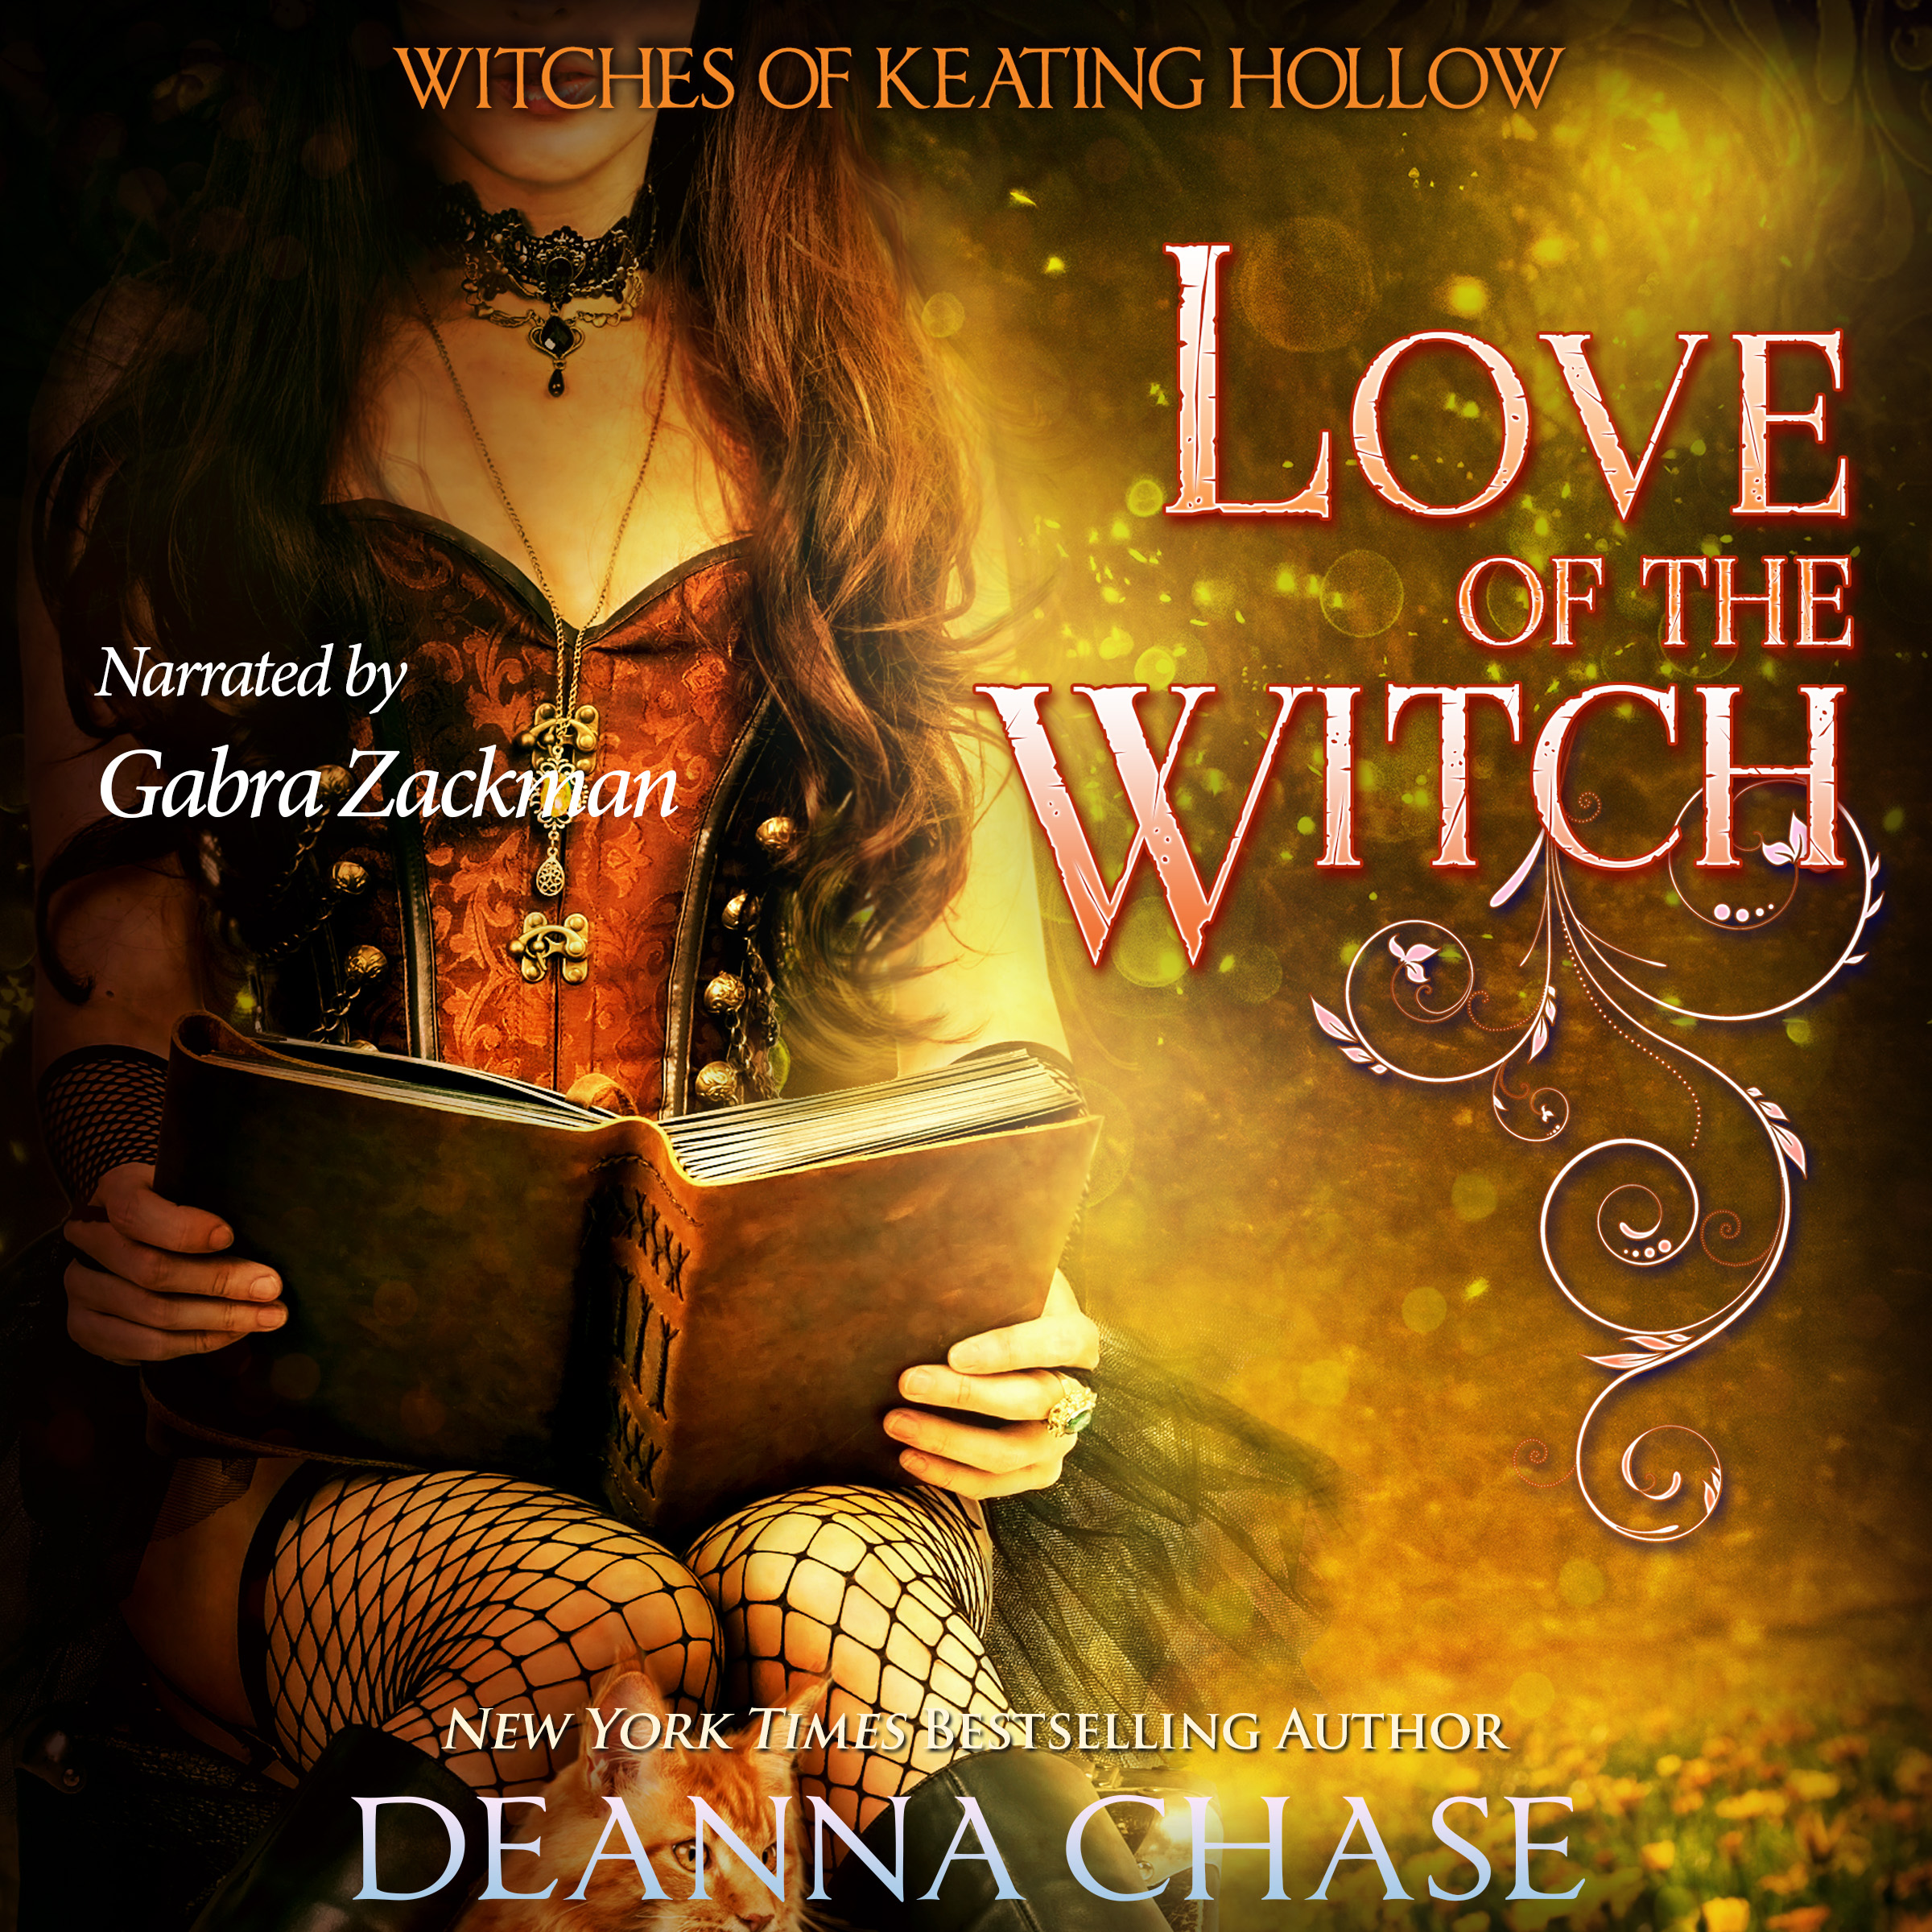 Love of the Witch audiobook by Deanna Chase